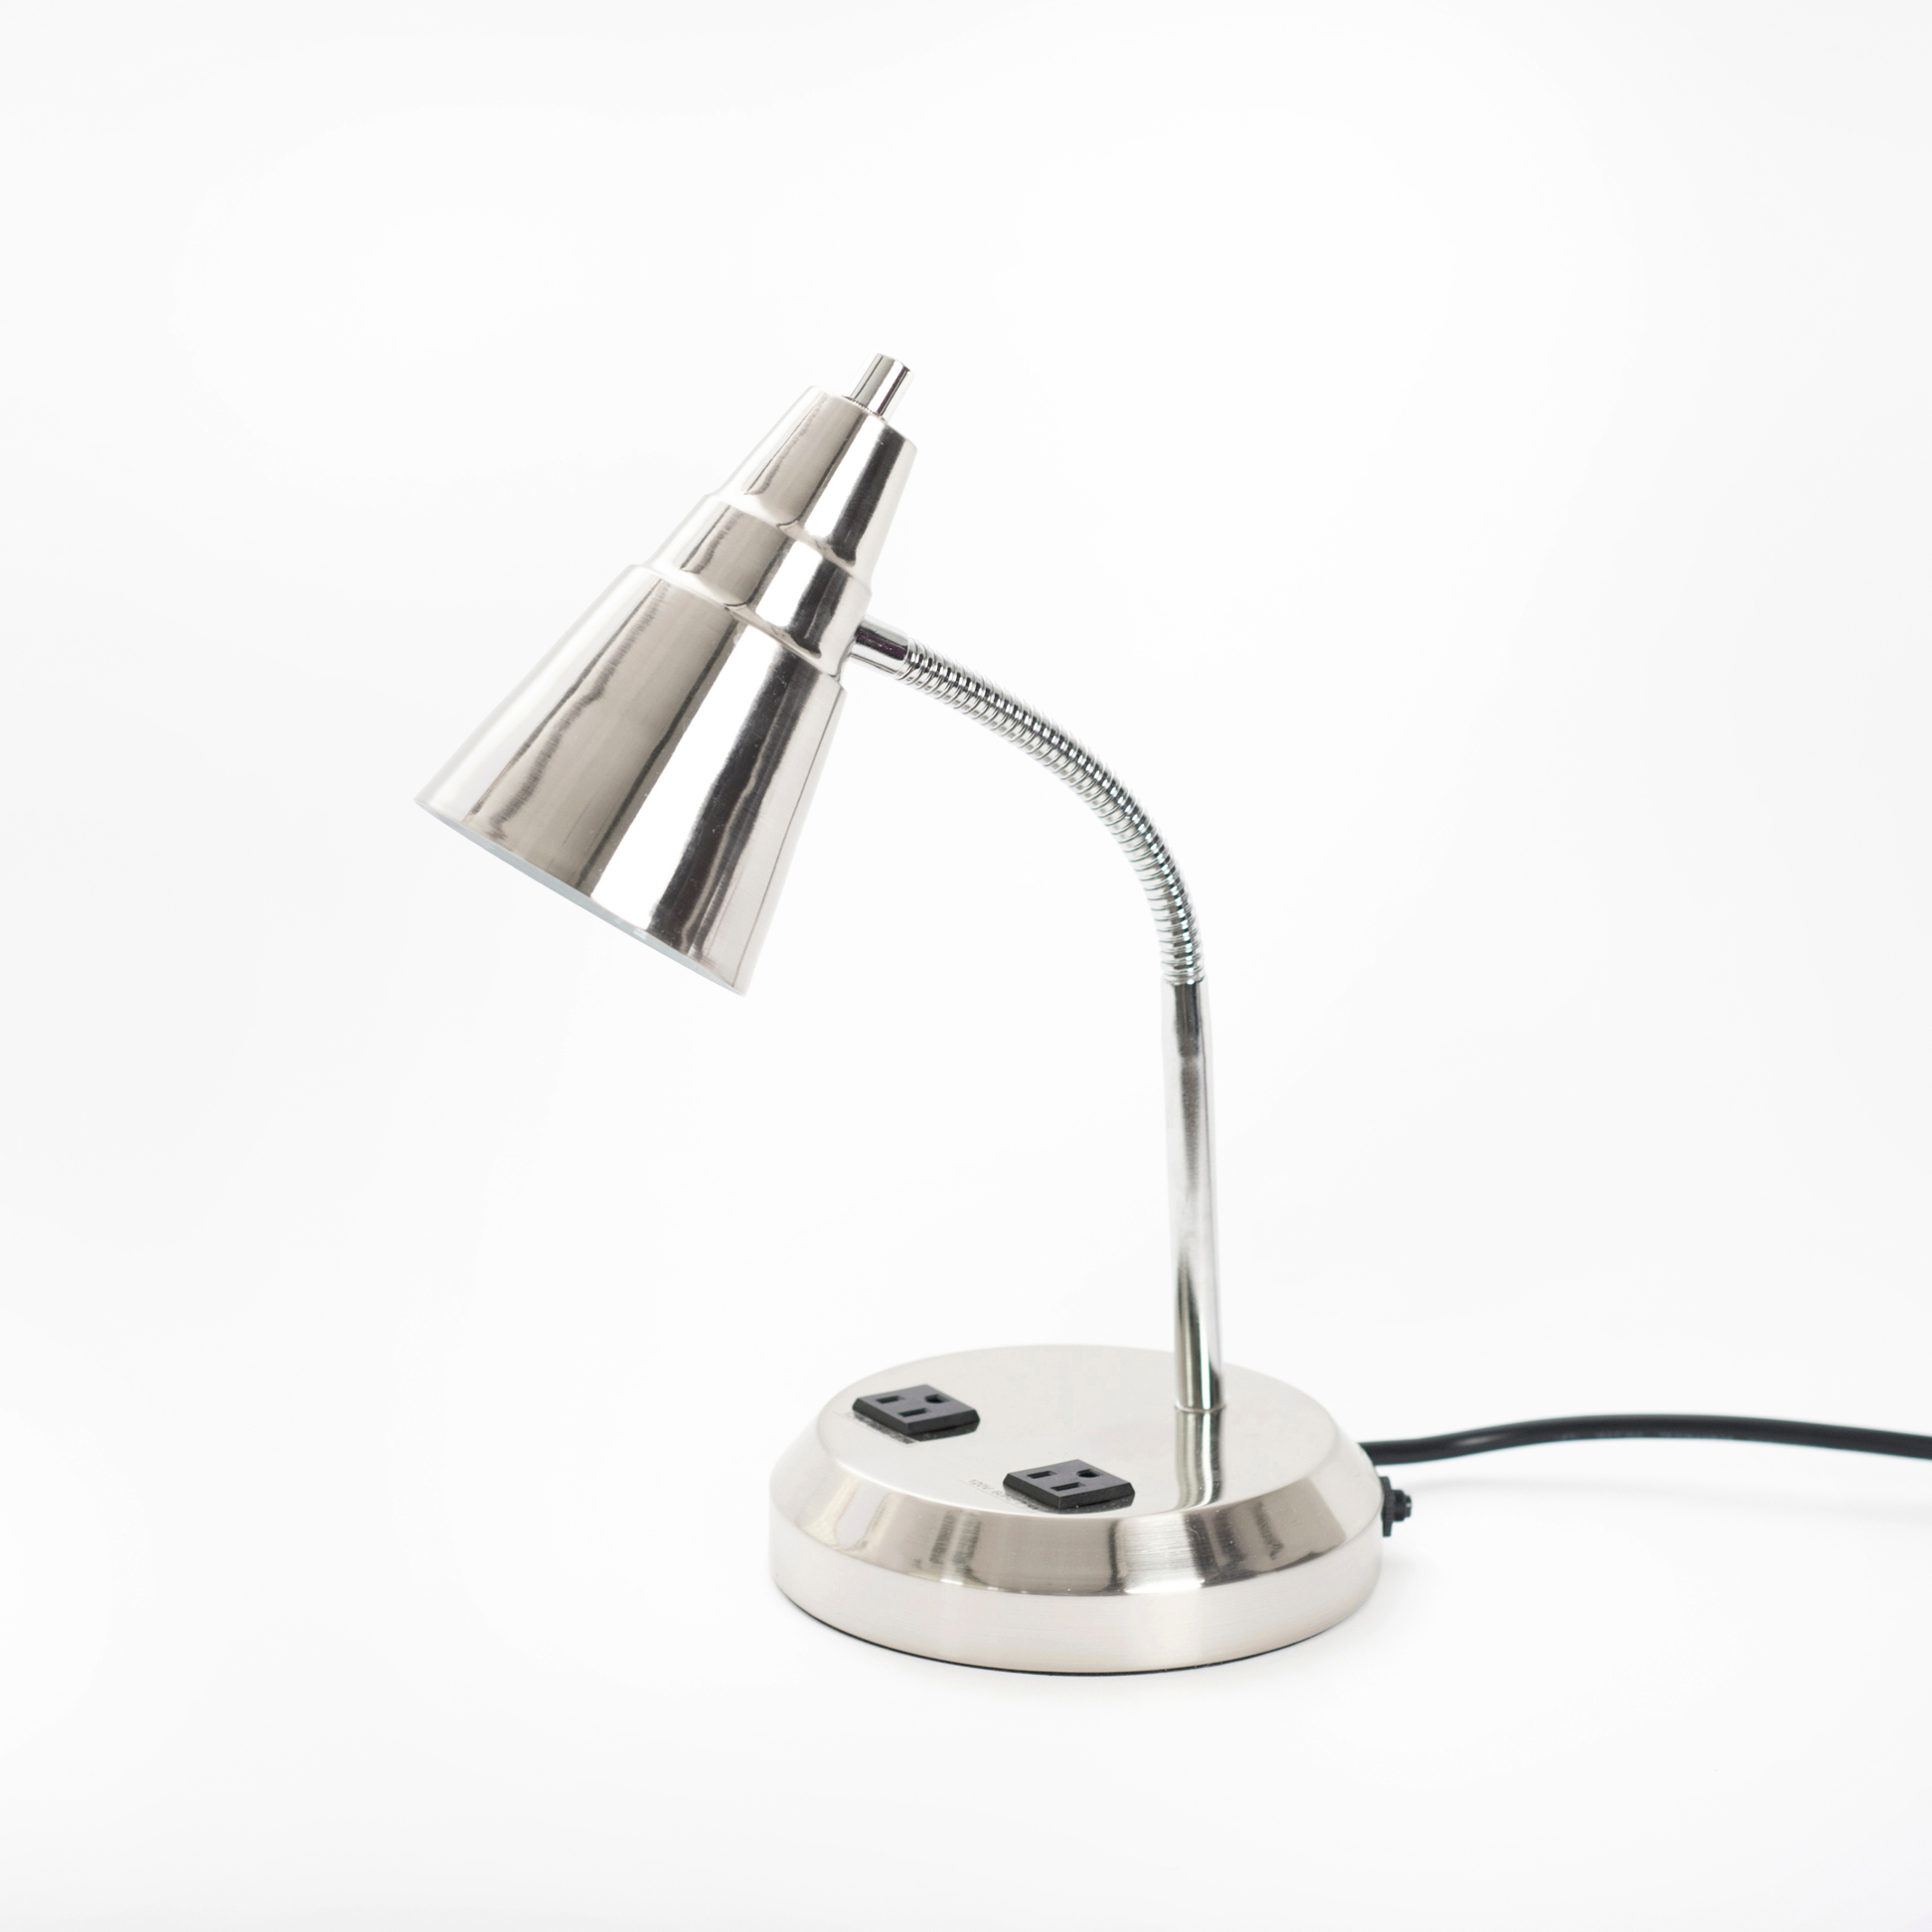 desk lamp with outlets 36 00 this desk lamp delivers two very. Black Bedroom Furniture Sets. Home Design Ideas